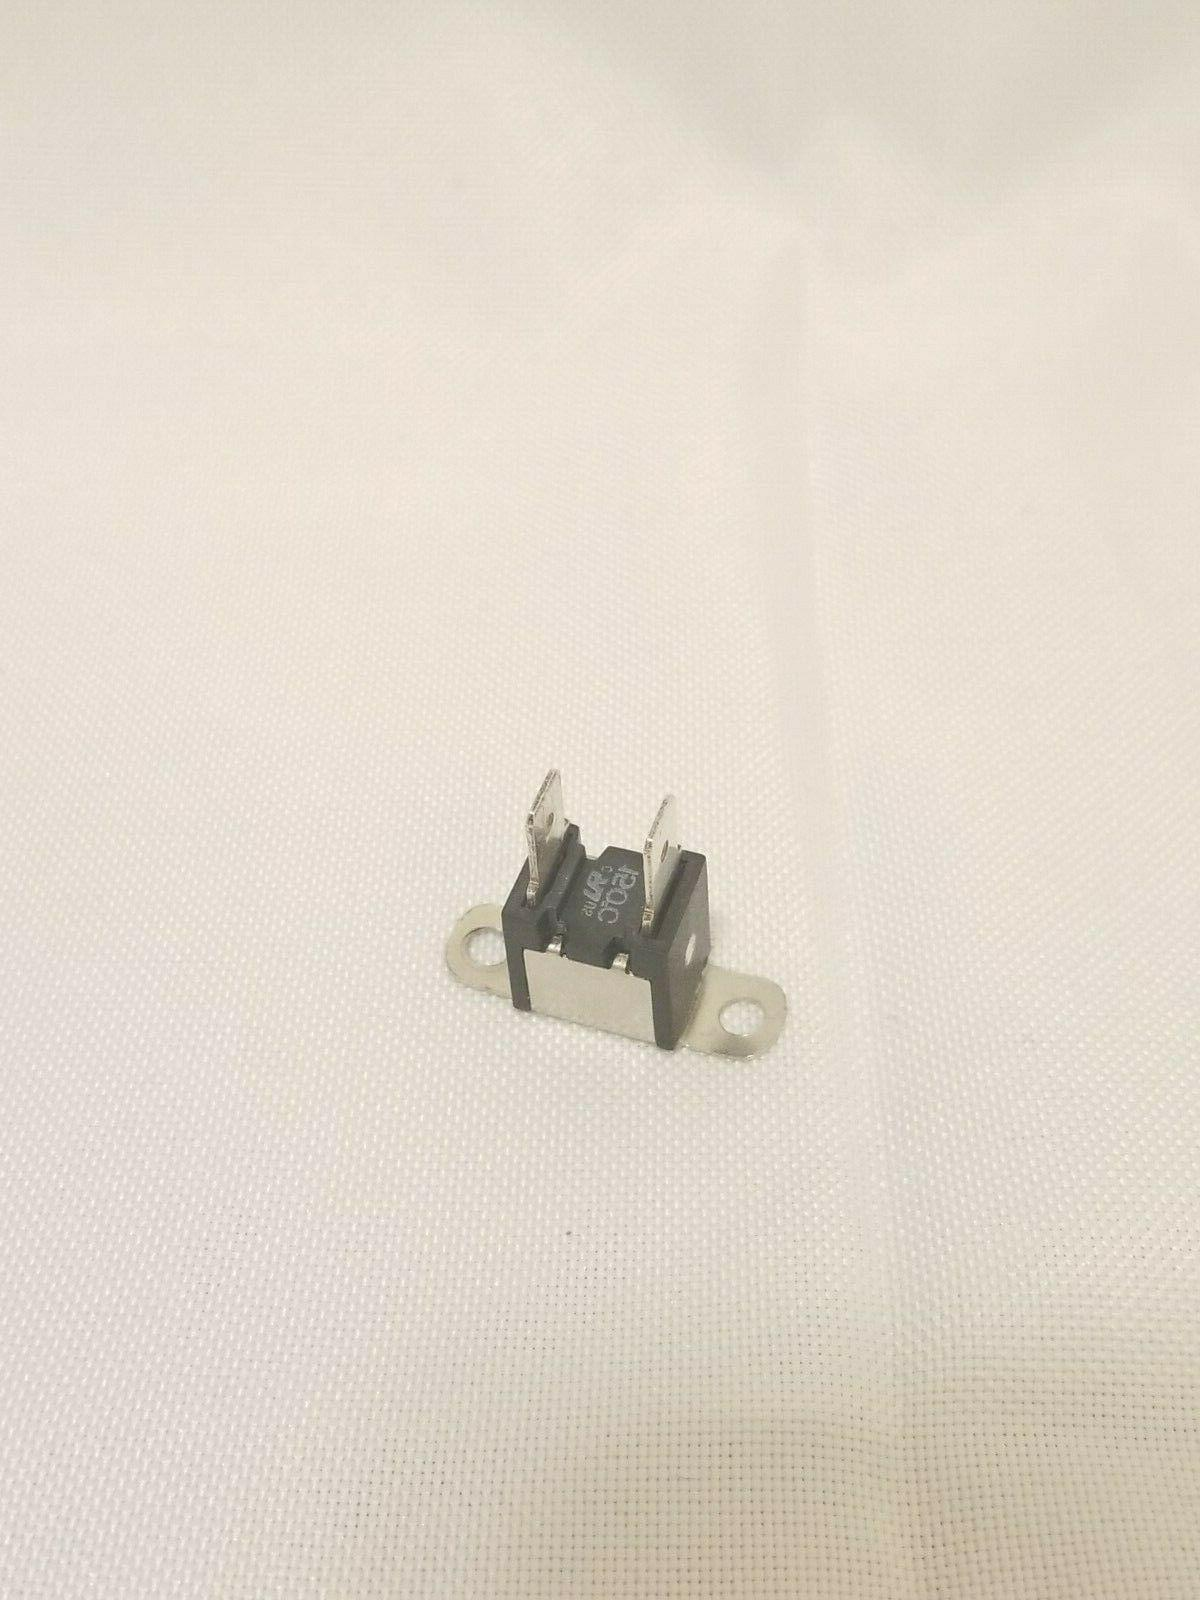 microwave oven thermal fuse cutoff thermo tco